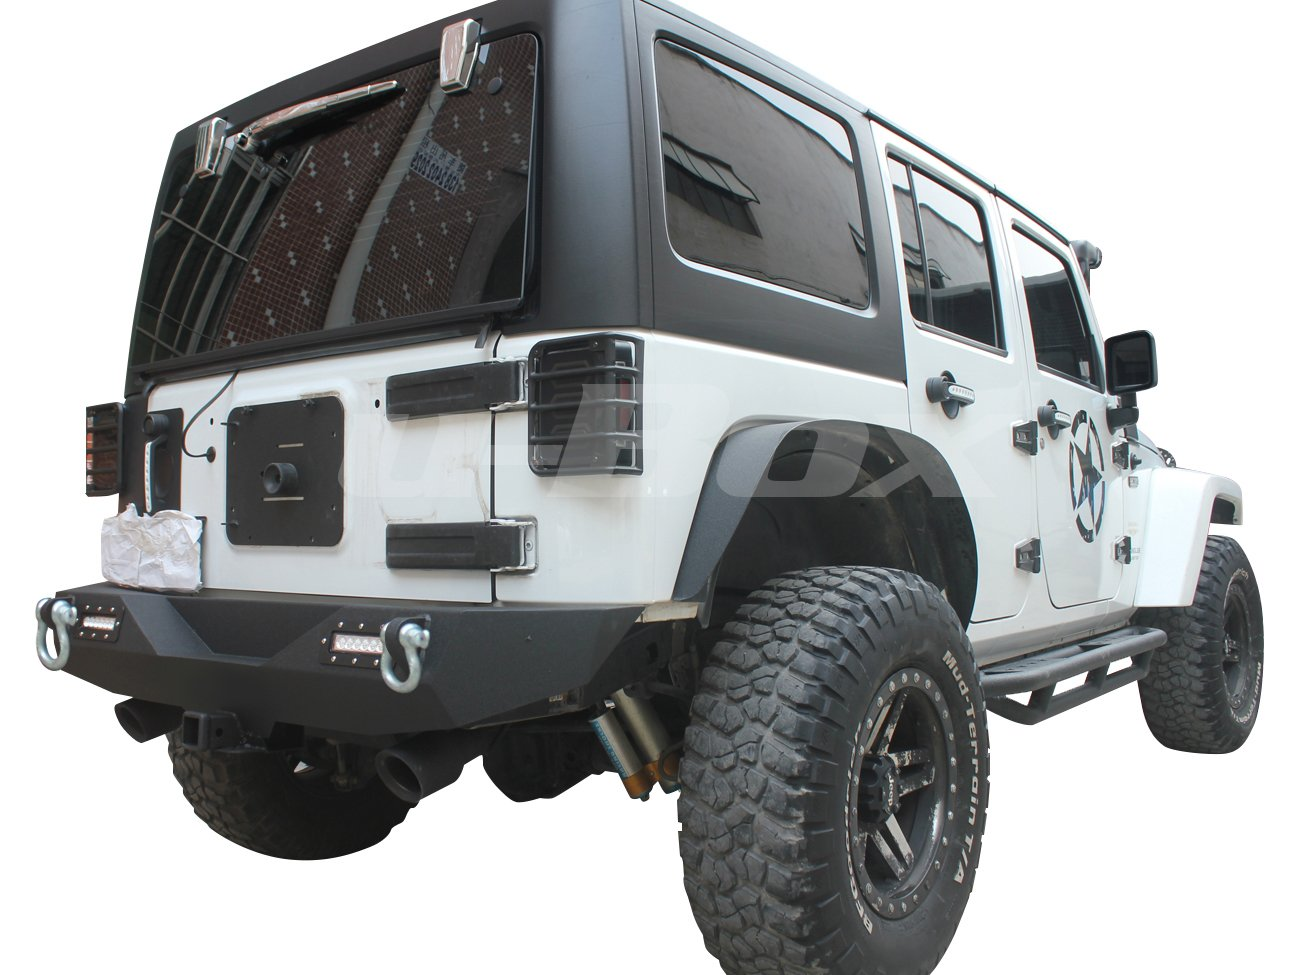 fe3513e234757 Cheap Tj Wrangler Rear Bumper, find Tj Wrangler Rear Bumper deals on ...